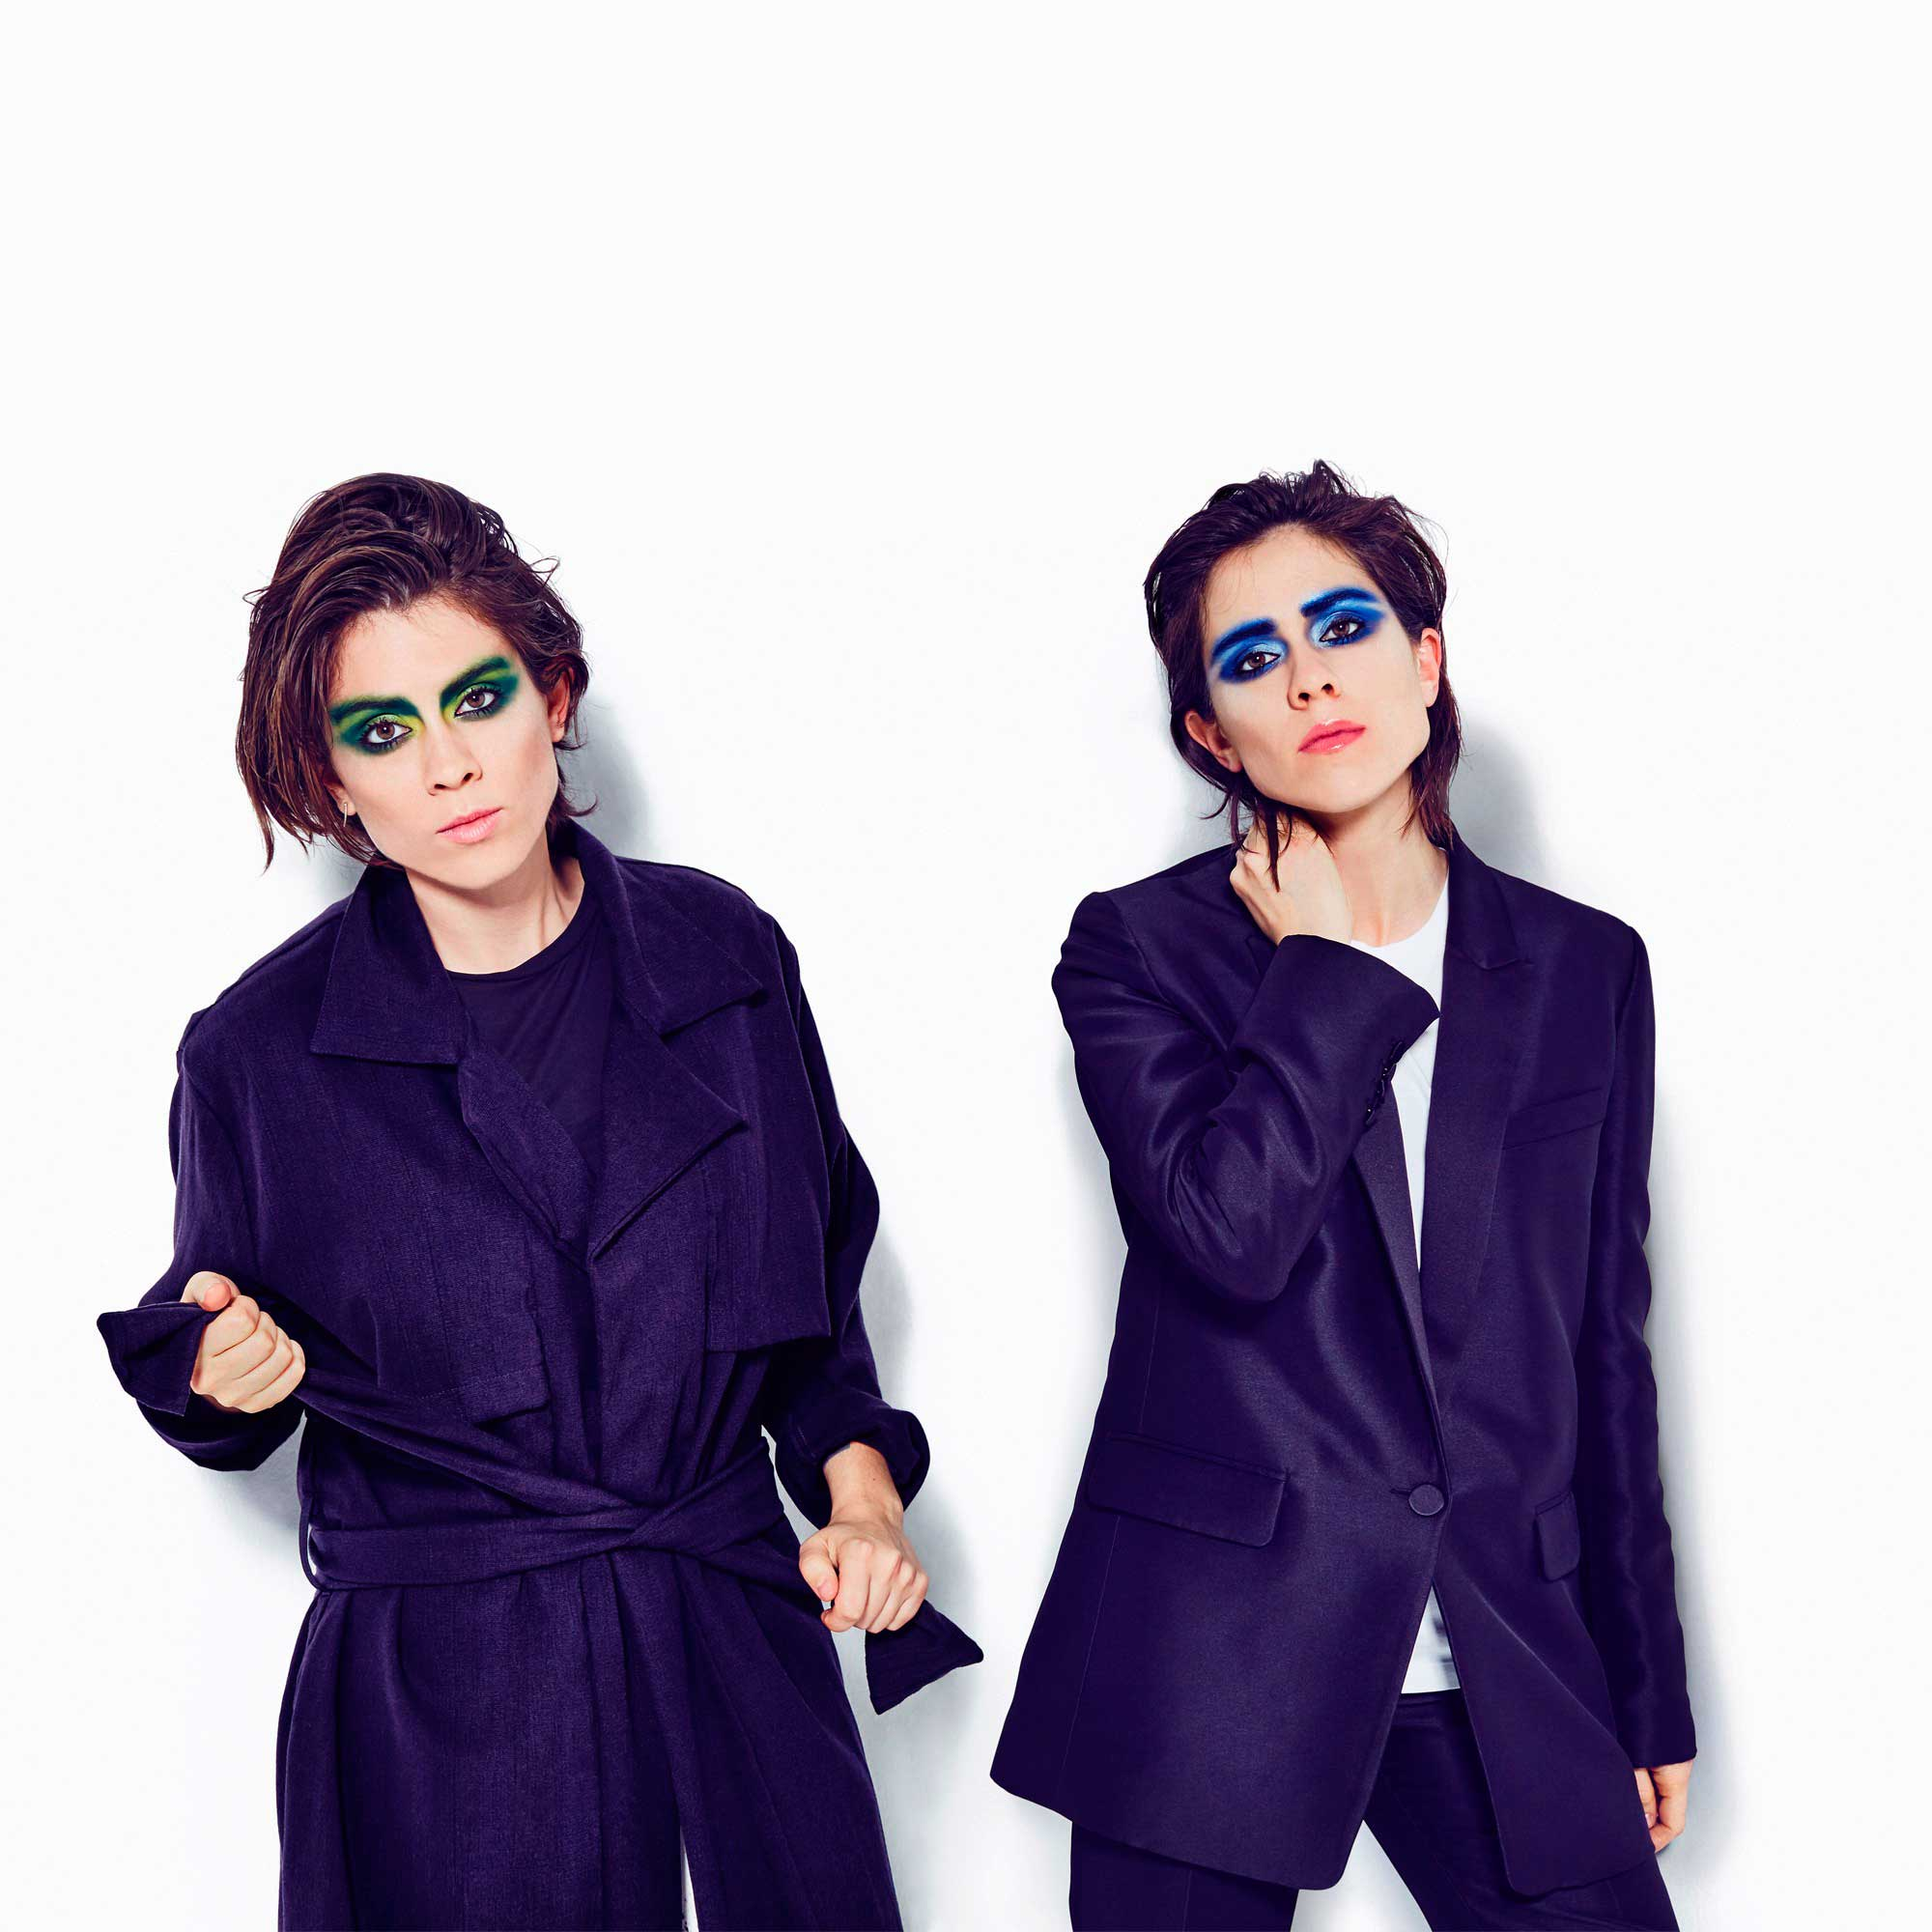 Pop's coolest sister act taps into a John Hughes refrain